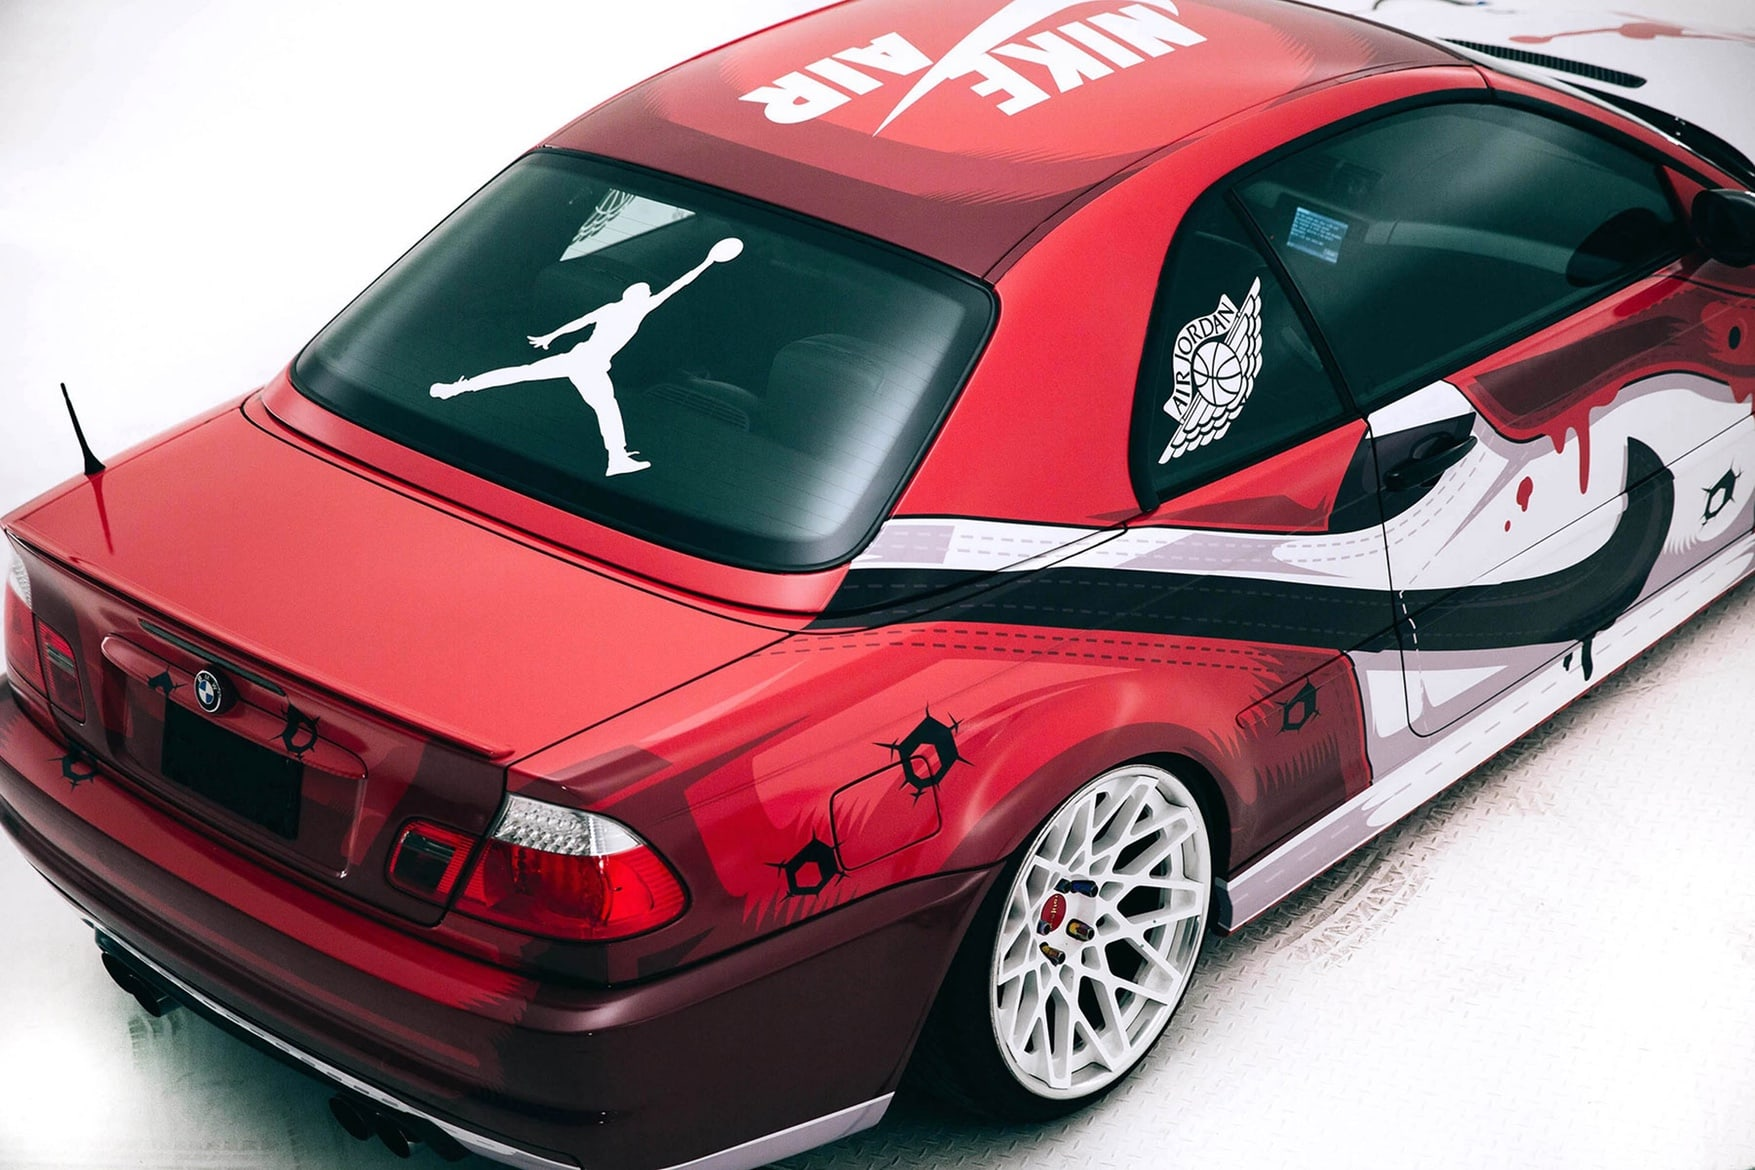 Graffiti Kings Air Jordan BMW 400ml